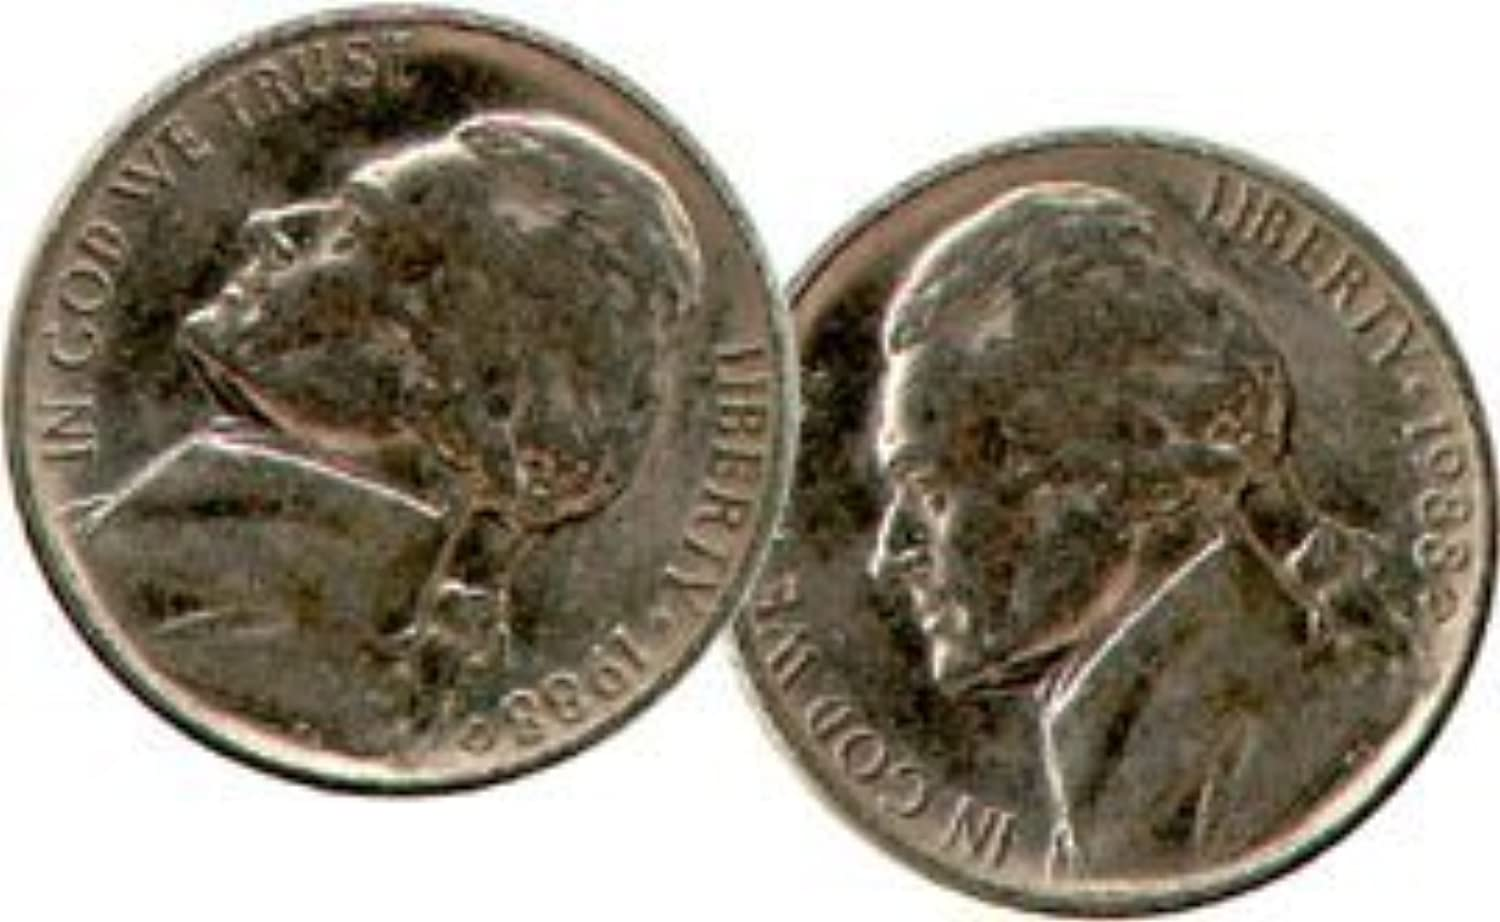 Double Sided Coin  Nickel  Head  You're ALWAYS a Winner  by MAK